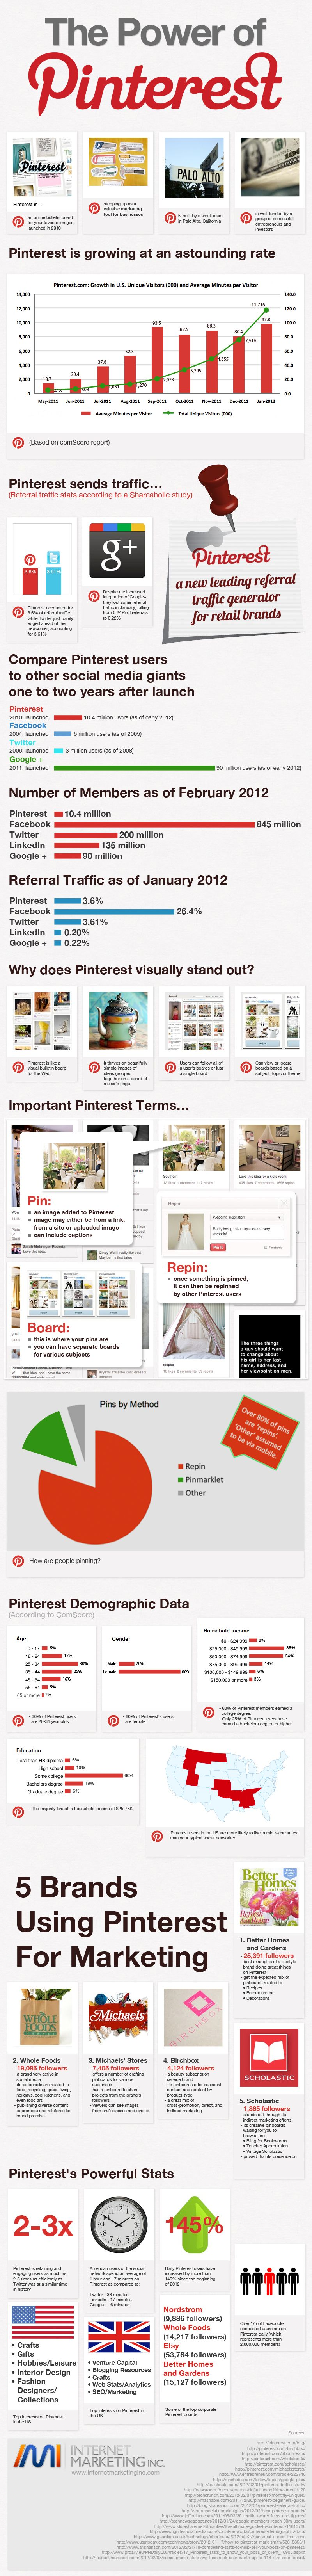 Pinterest Data You Can't Ignore: The Ultimate Guide to Pinterest [infographic]